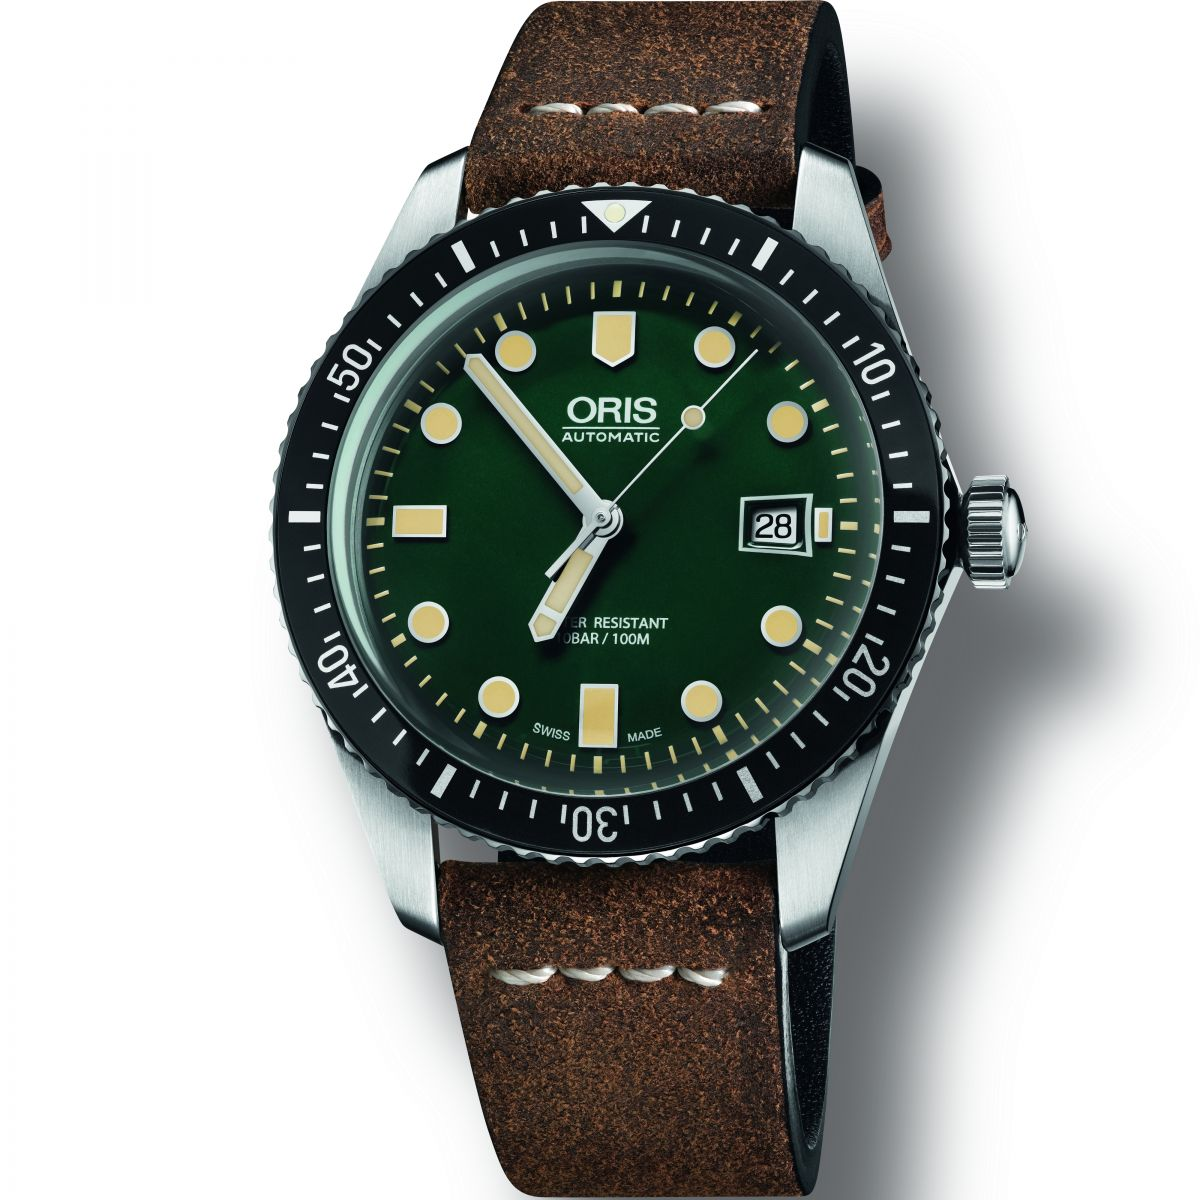 copy watches oris porter begins retailing revolution carloris mr